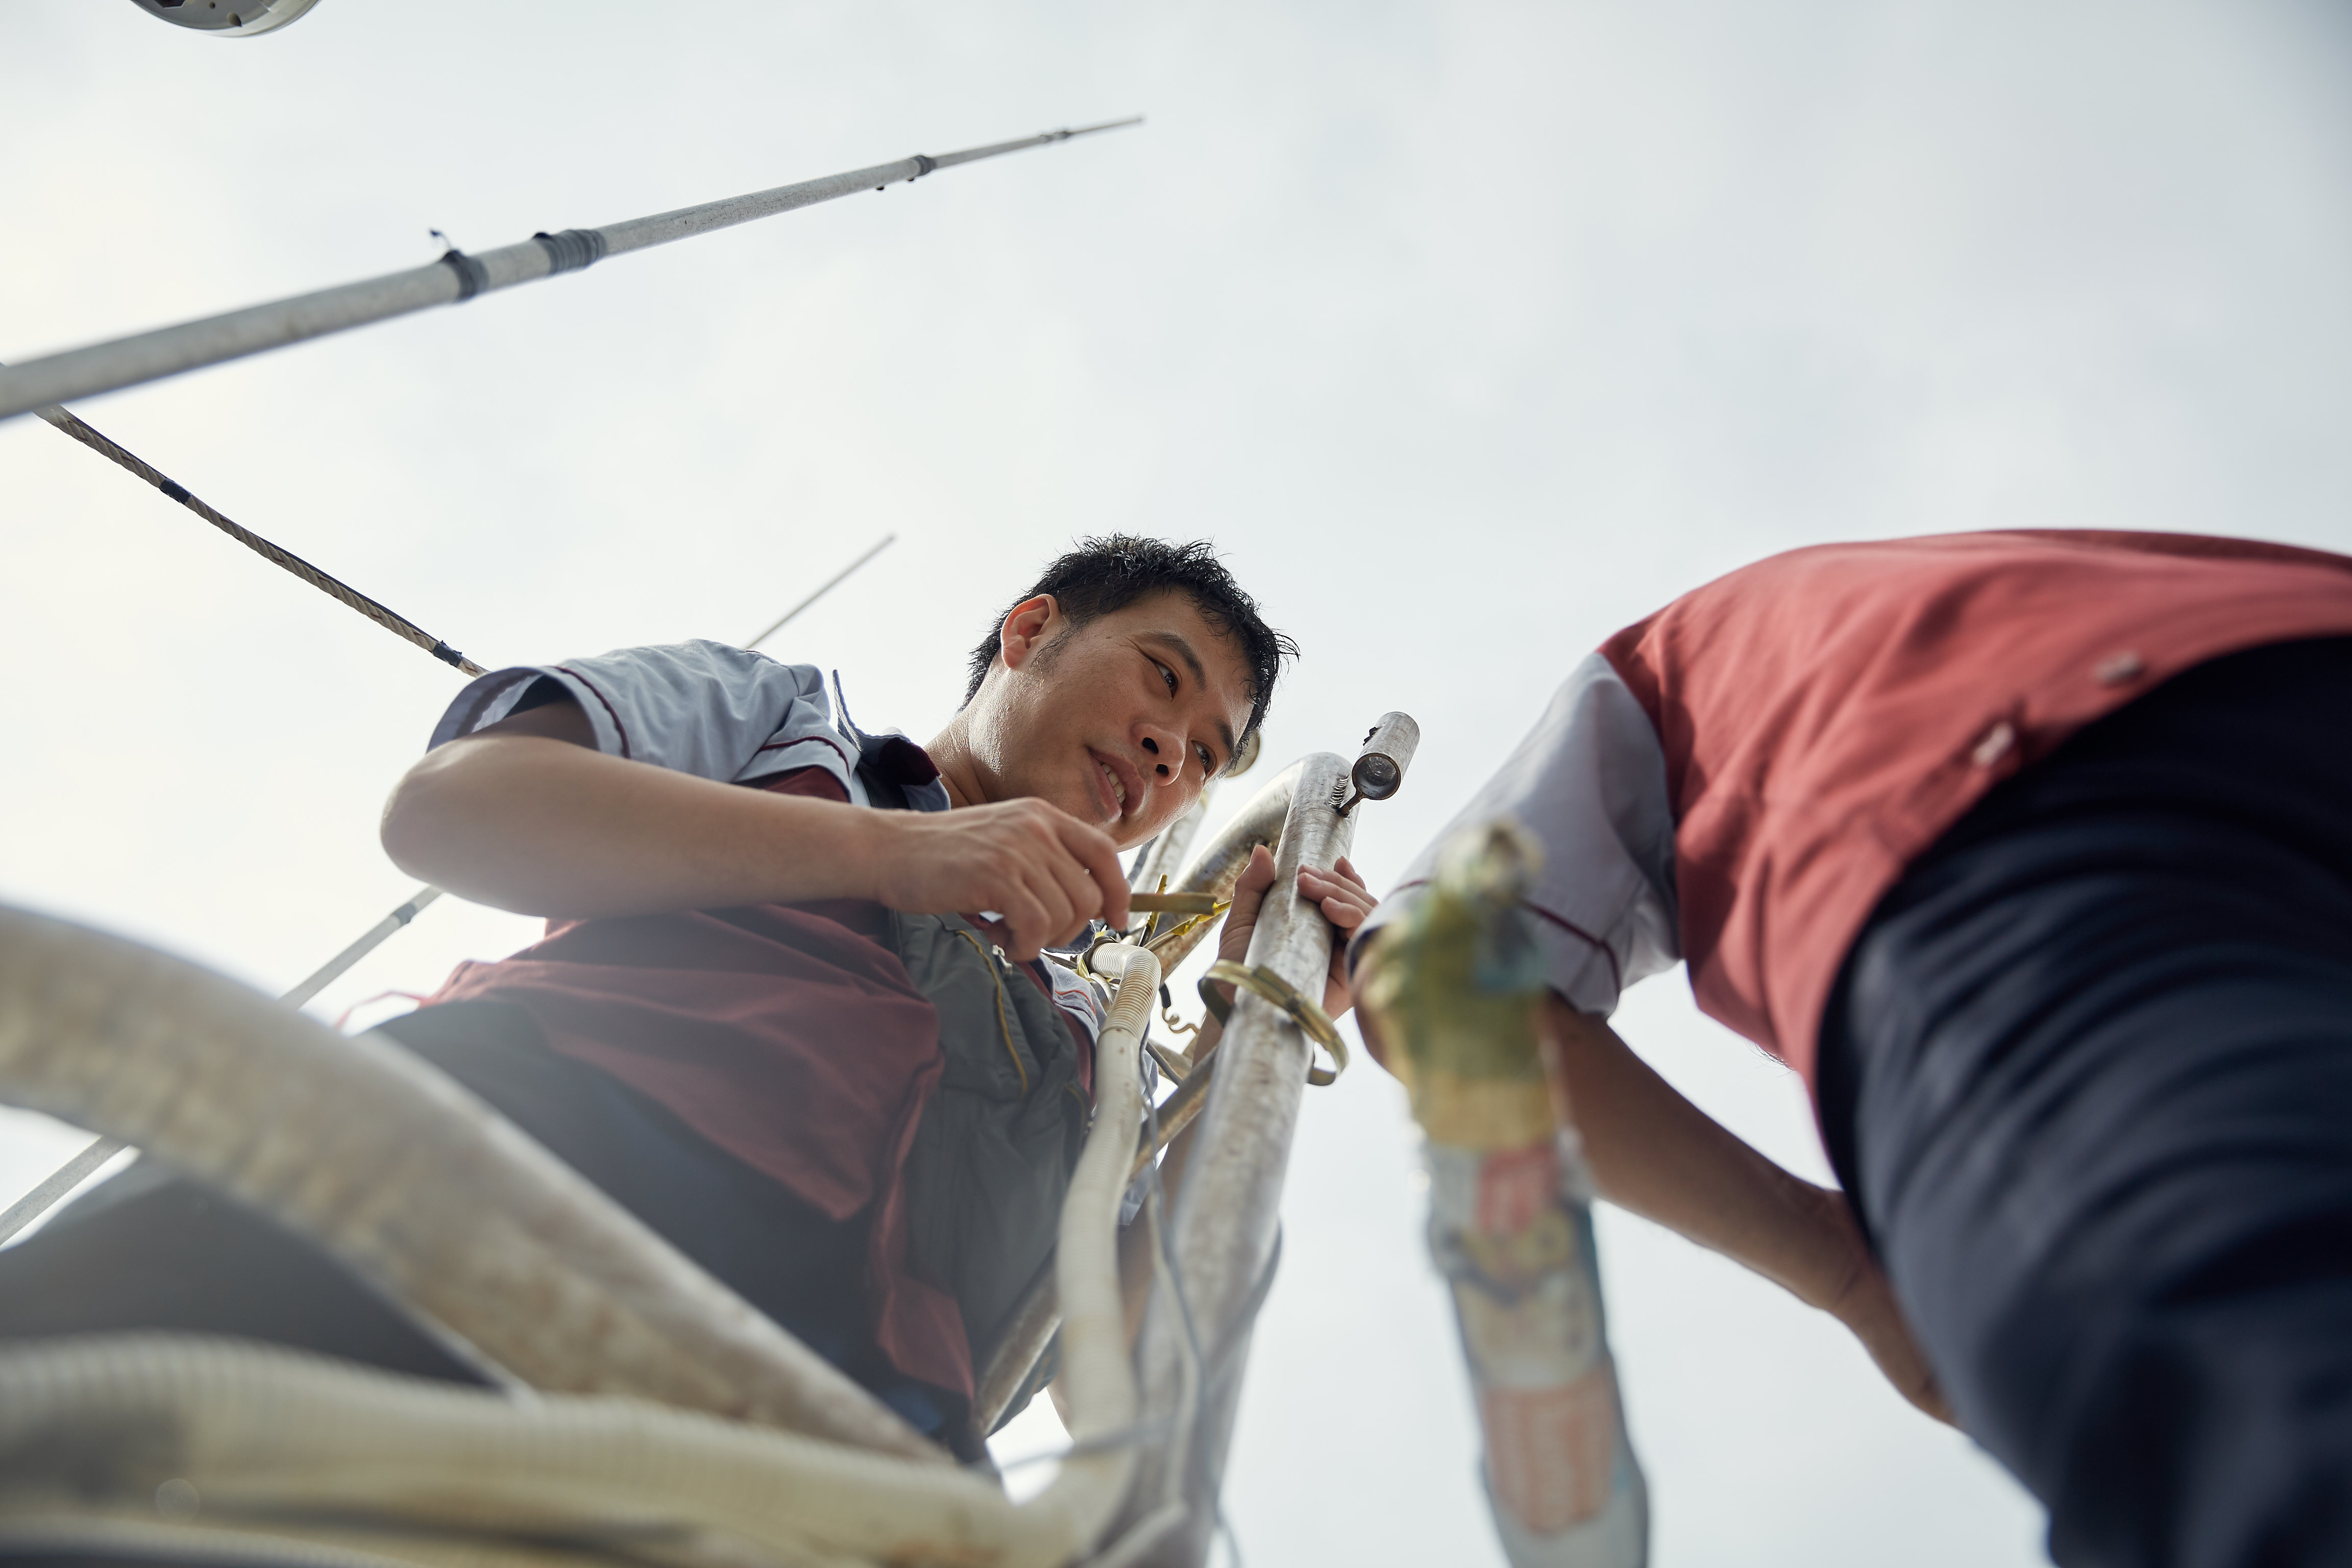 Teams work to install technology on a Thai fishing vessel to bring digital traceability to Thailand's fishing industry. Photo credit: Thai Union